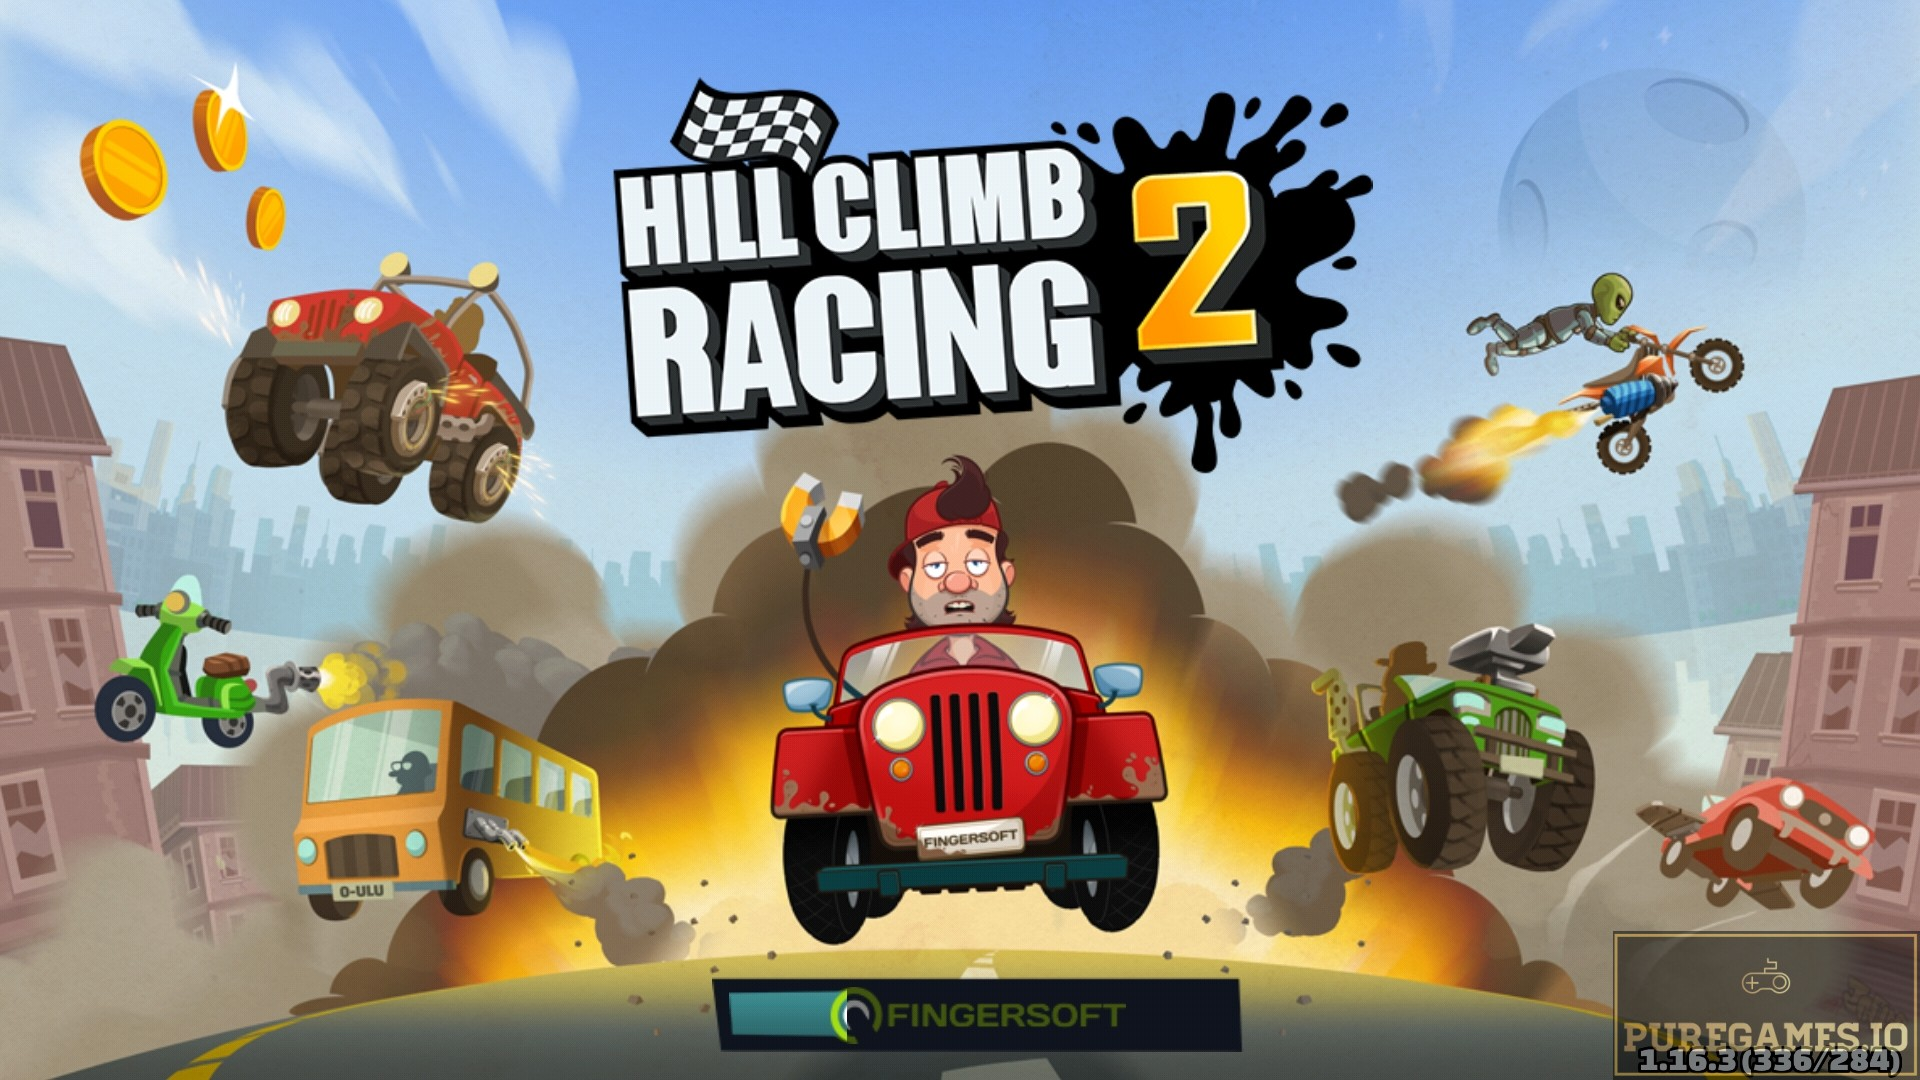 Download Hill Climb Racing 2 APK - For Android and iOS 8